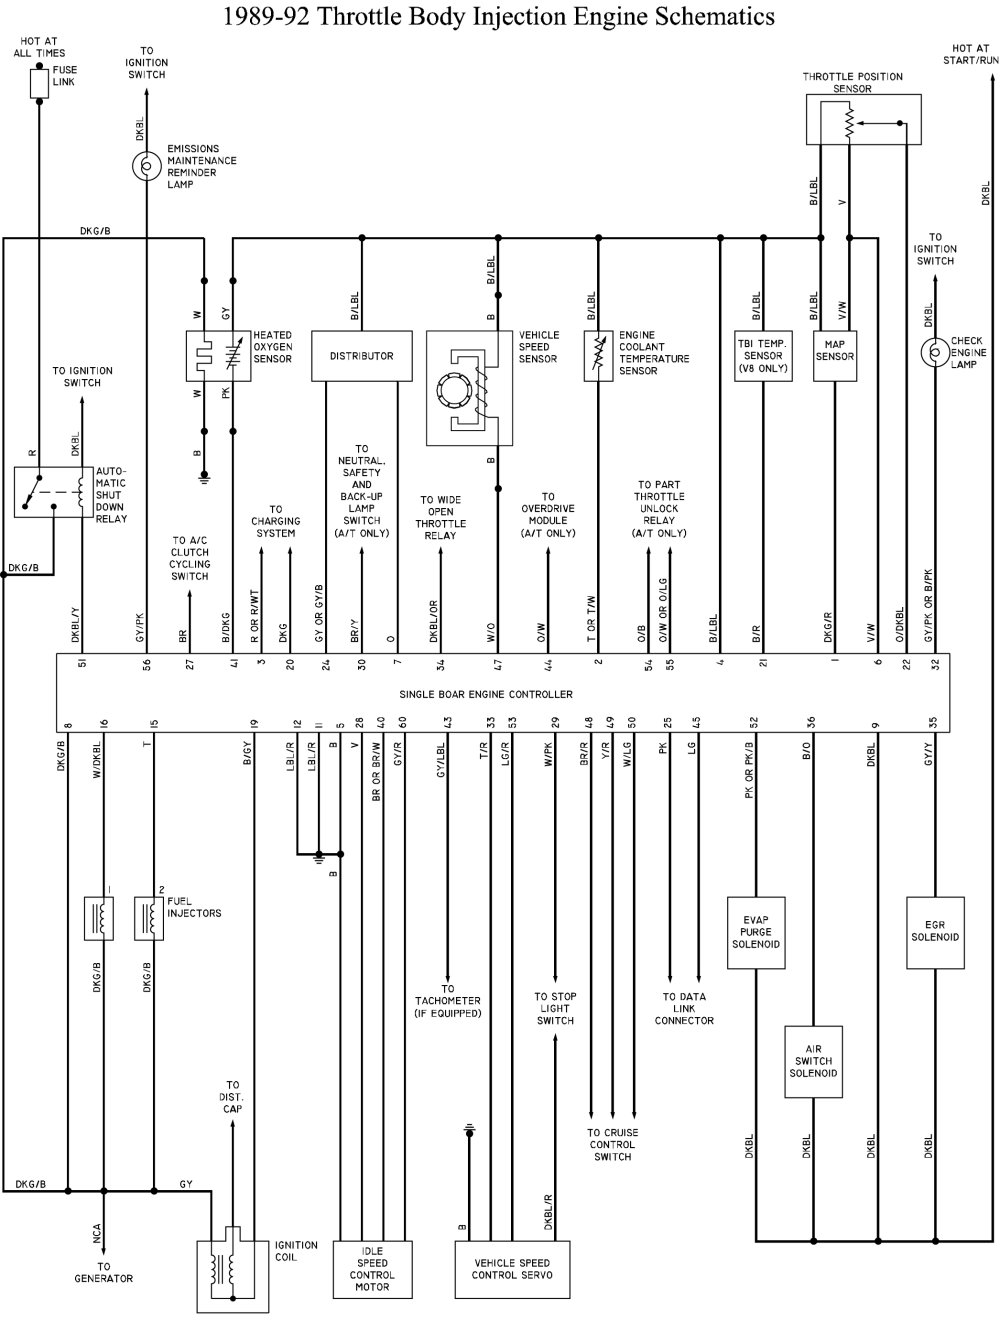 1990 dodge ram van wiring diagram wiring diagram experts1990 dodge caravan wiring diagram carbonvote mudit blog \\u2022 1990 dodge ram van wiring diagram